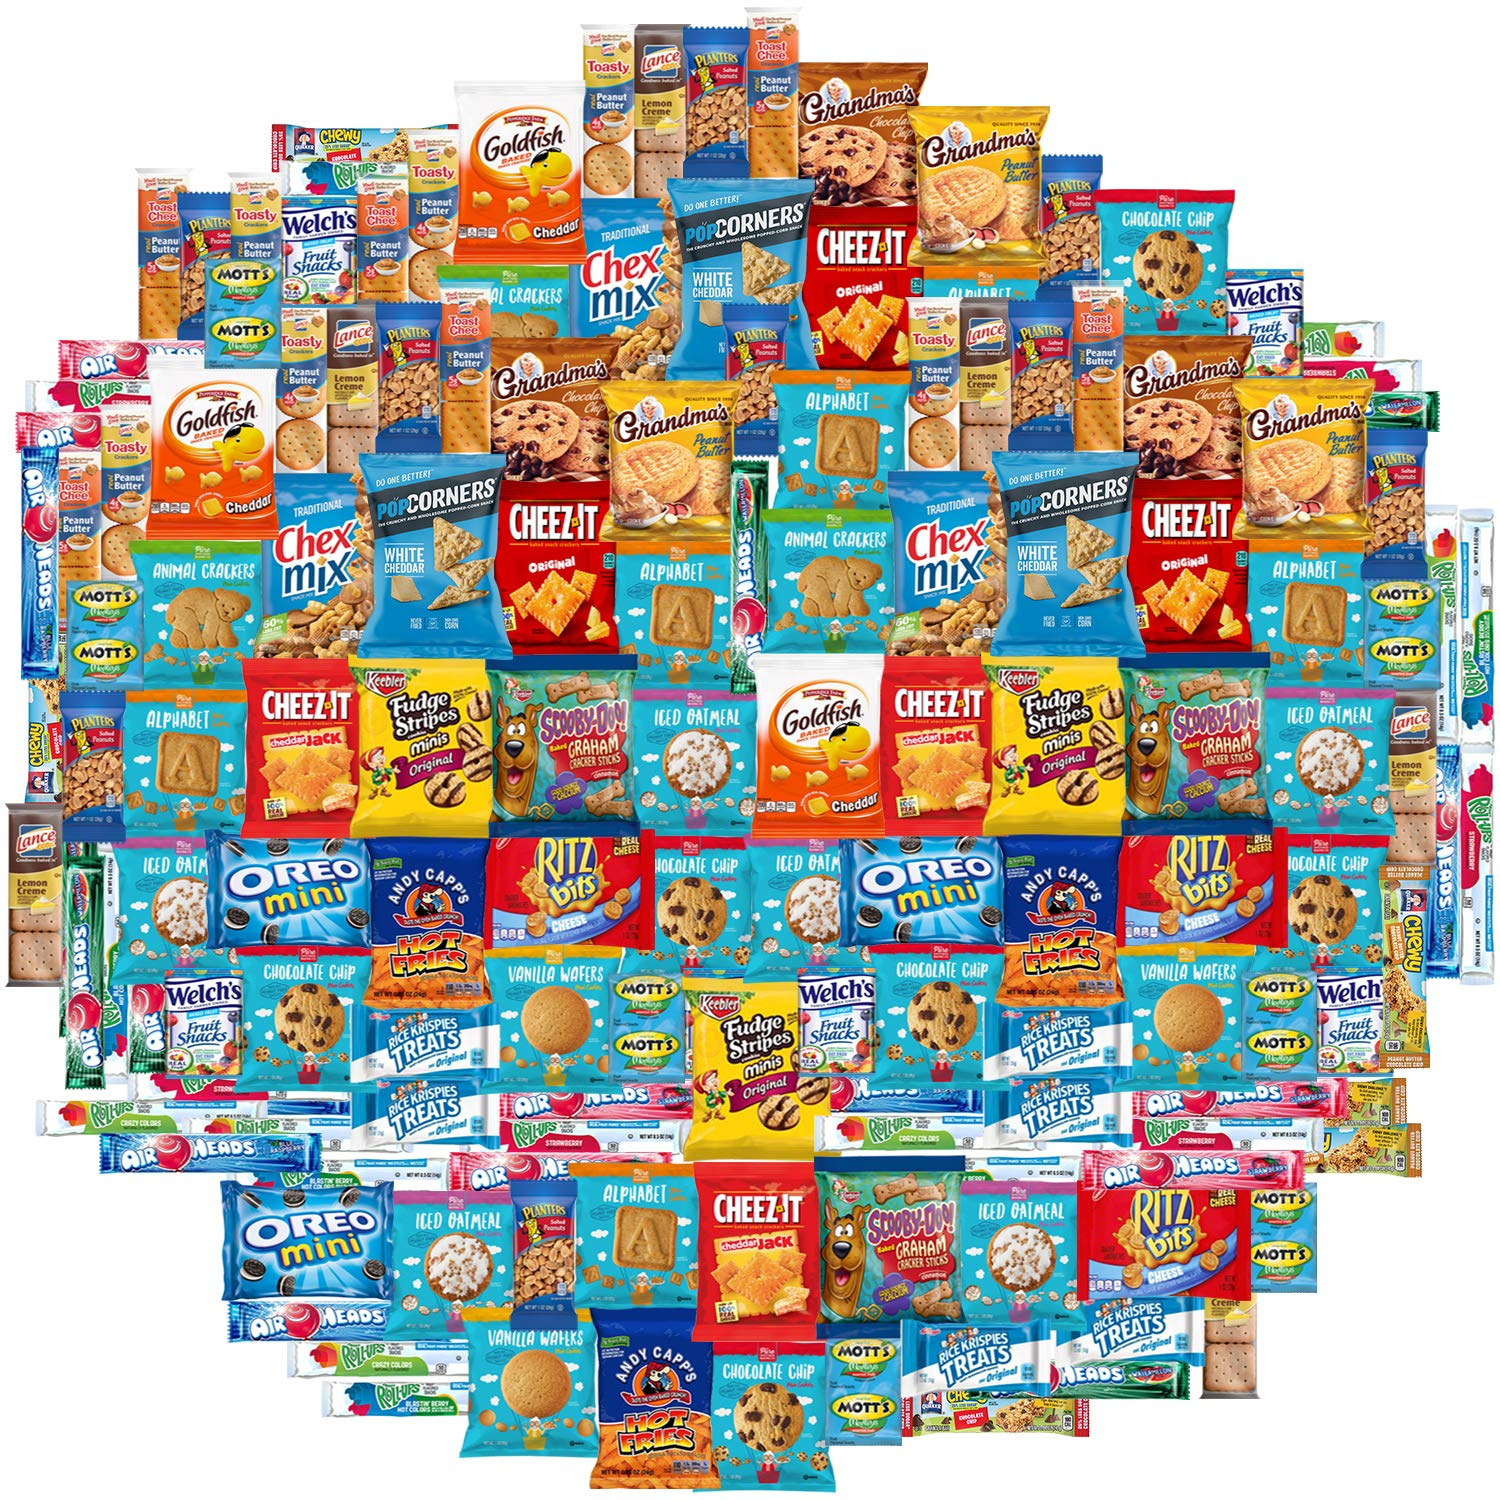 Snacks Care Package Mix Variety Pack of Chips, Cookies, Candy, Care Package to Friends and Family (150 Count) by Snacks Generation (Image #1)